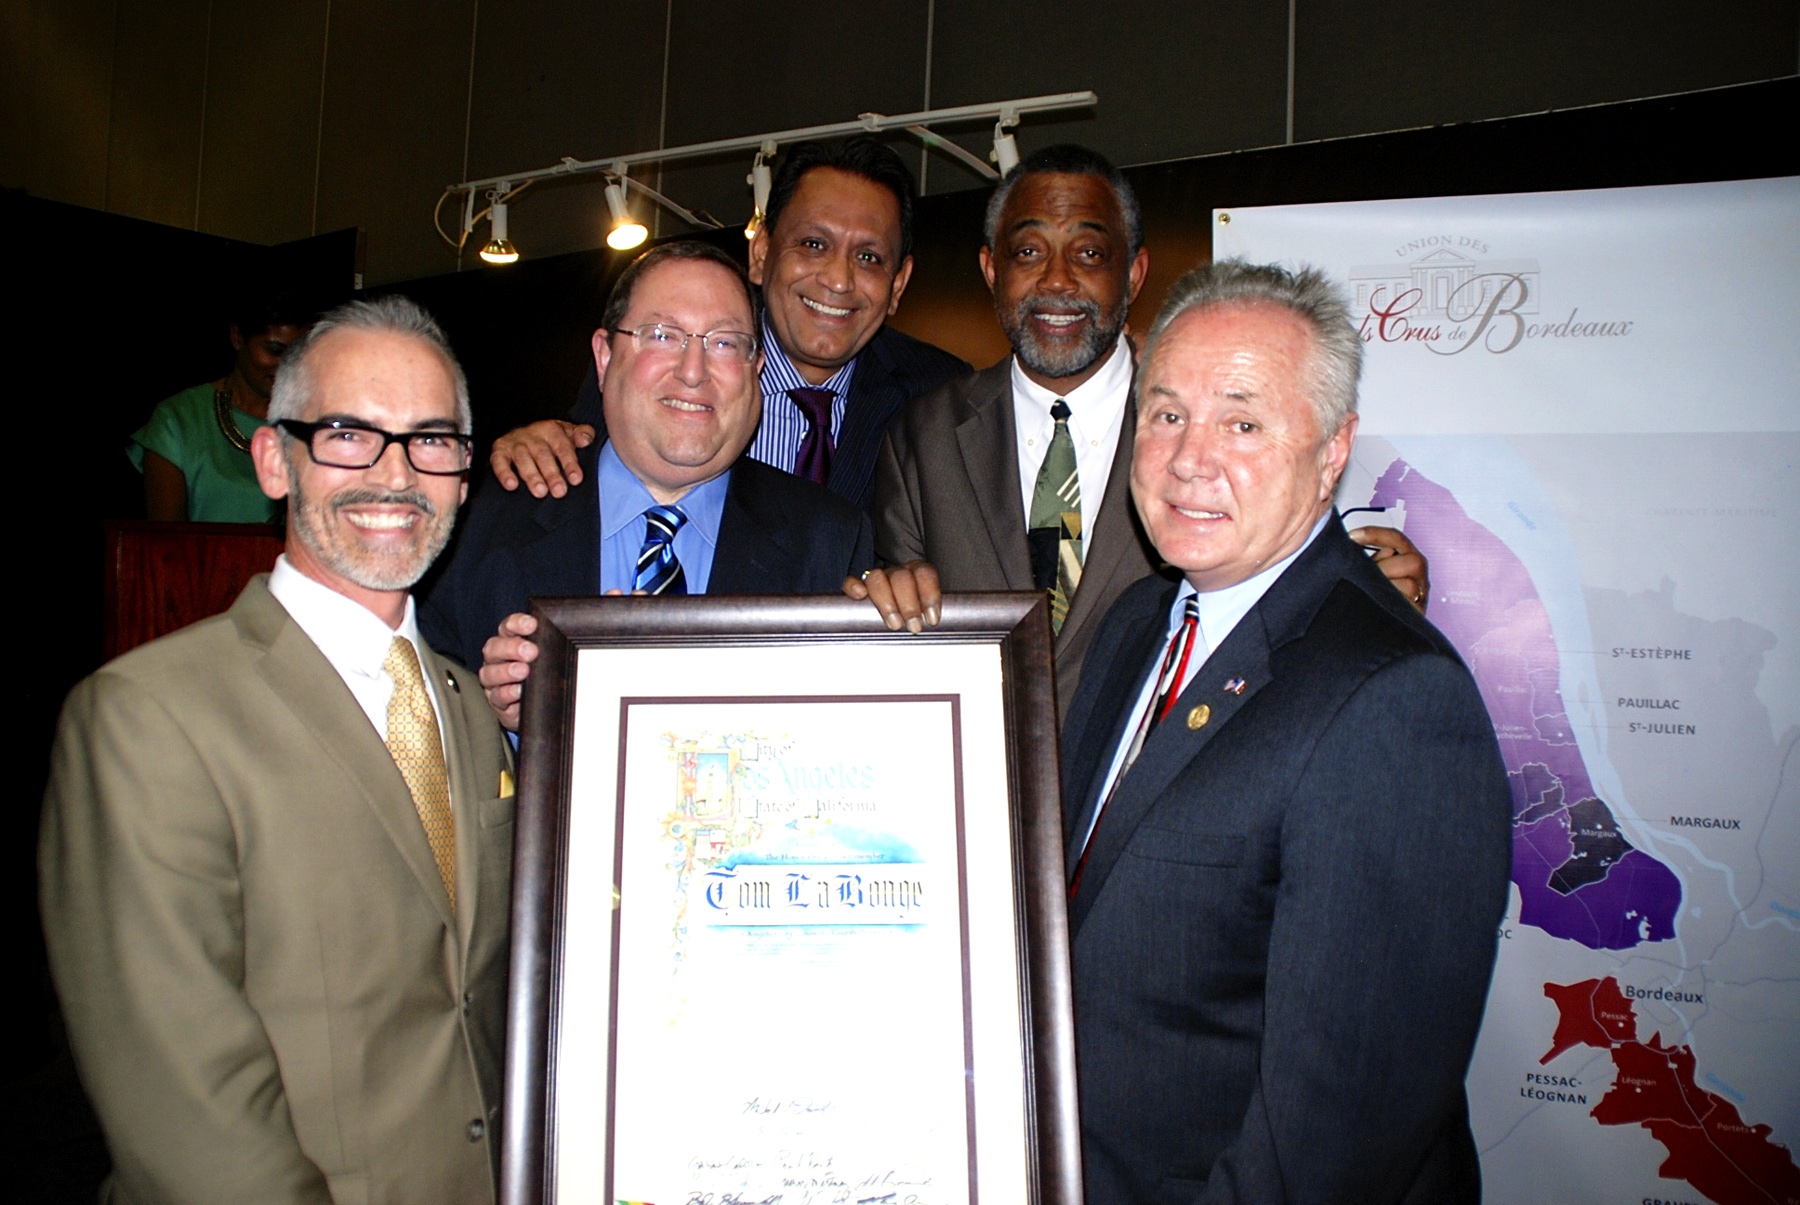 Councilmember Mitch O'Farrell, Council District 13, Councilmember Paul Koretz, Council District 5, Councilmember Gil Cedillo, Council District 1, Councilmember Curren D. Price, Jr., Council District 9, Councilmember Tom LaBonge, Council District 4